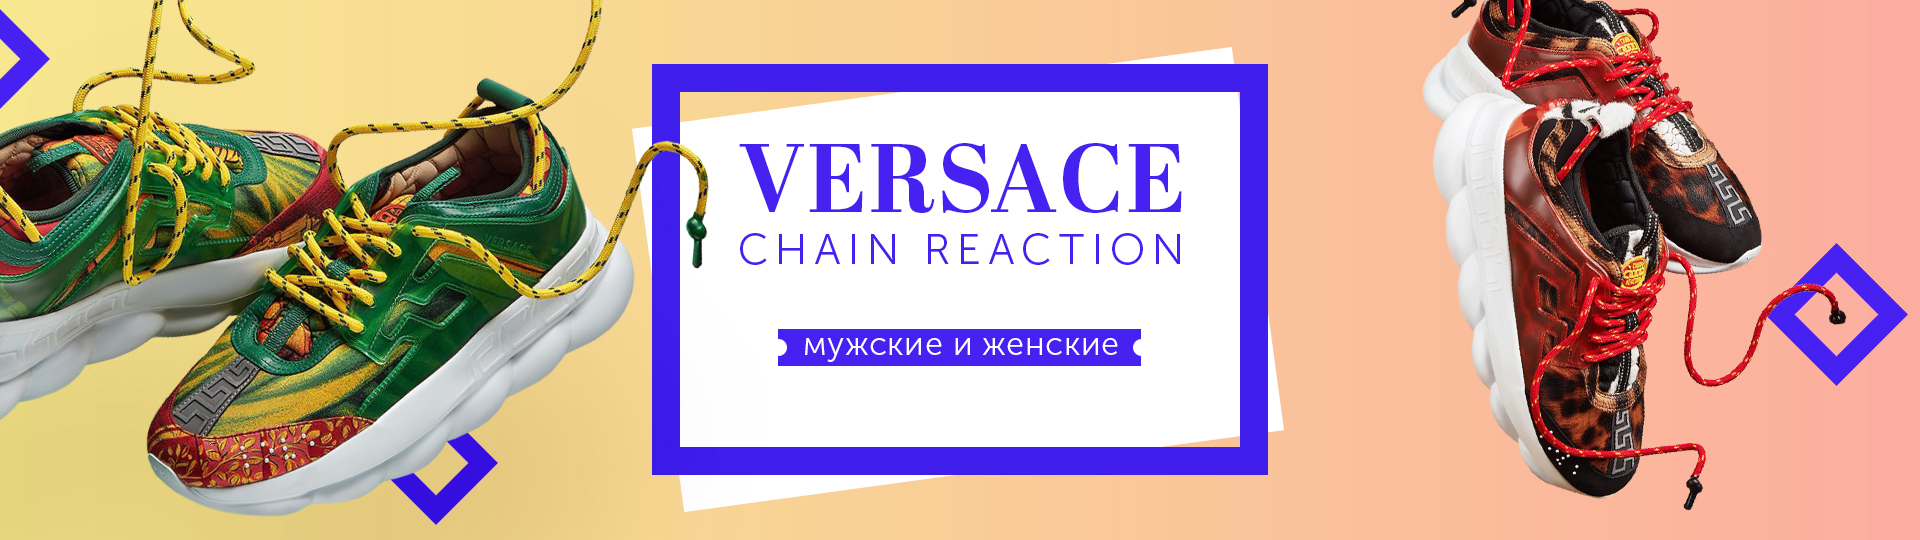 Versace Chain Reaction